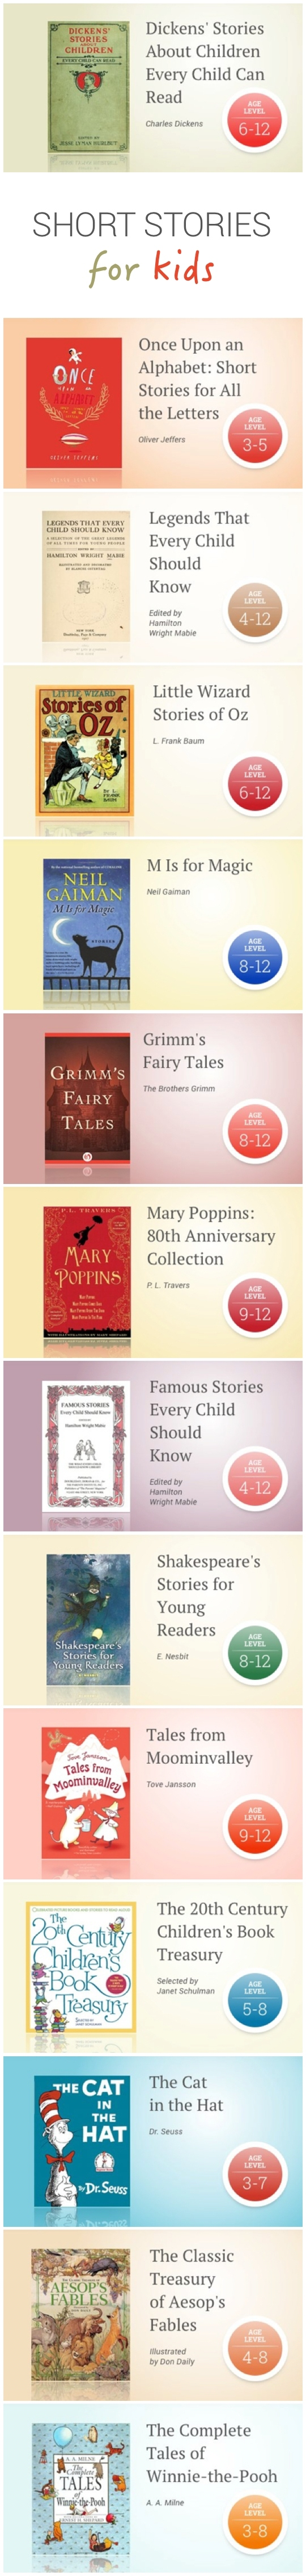 Best short stories for kids infographic